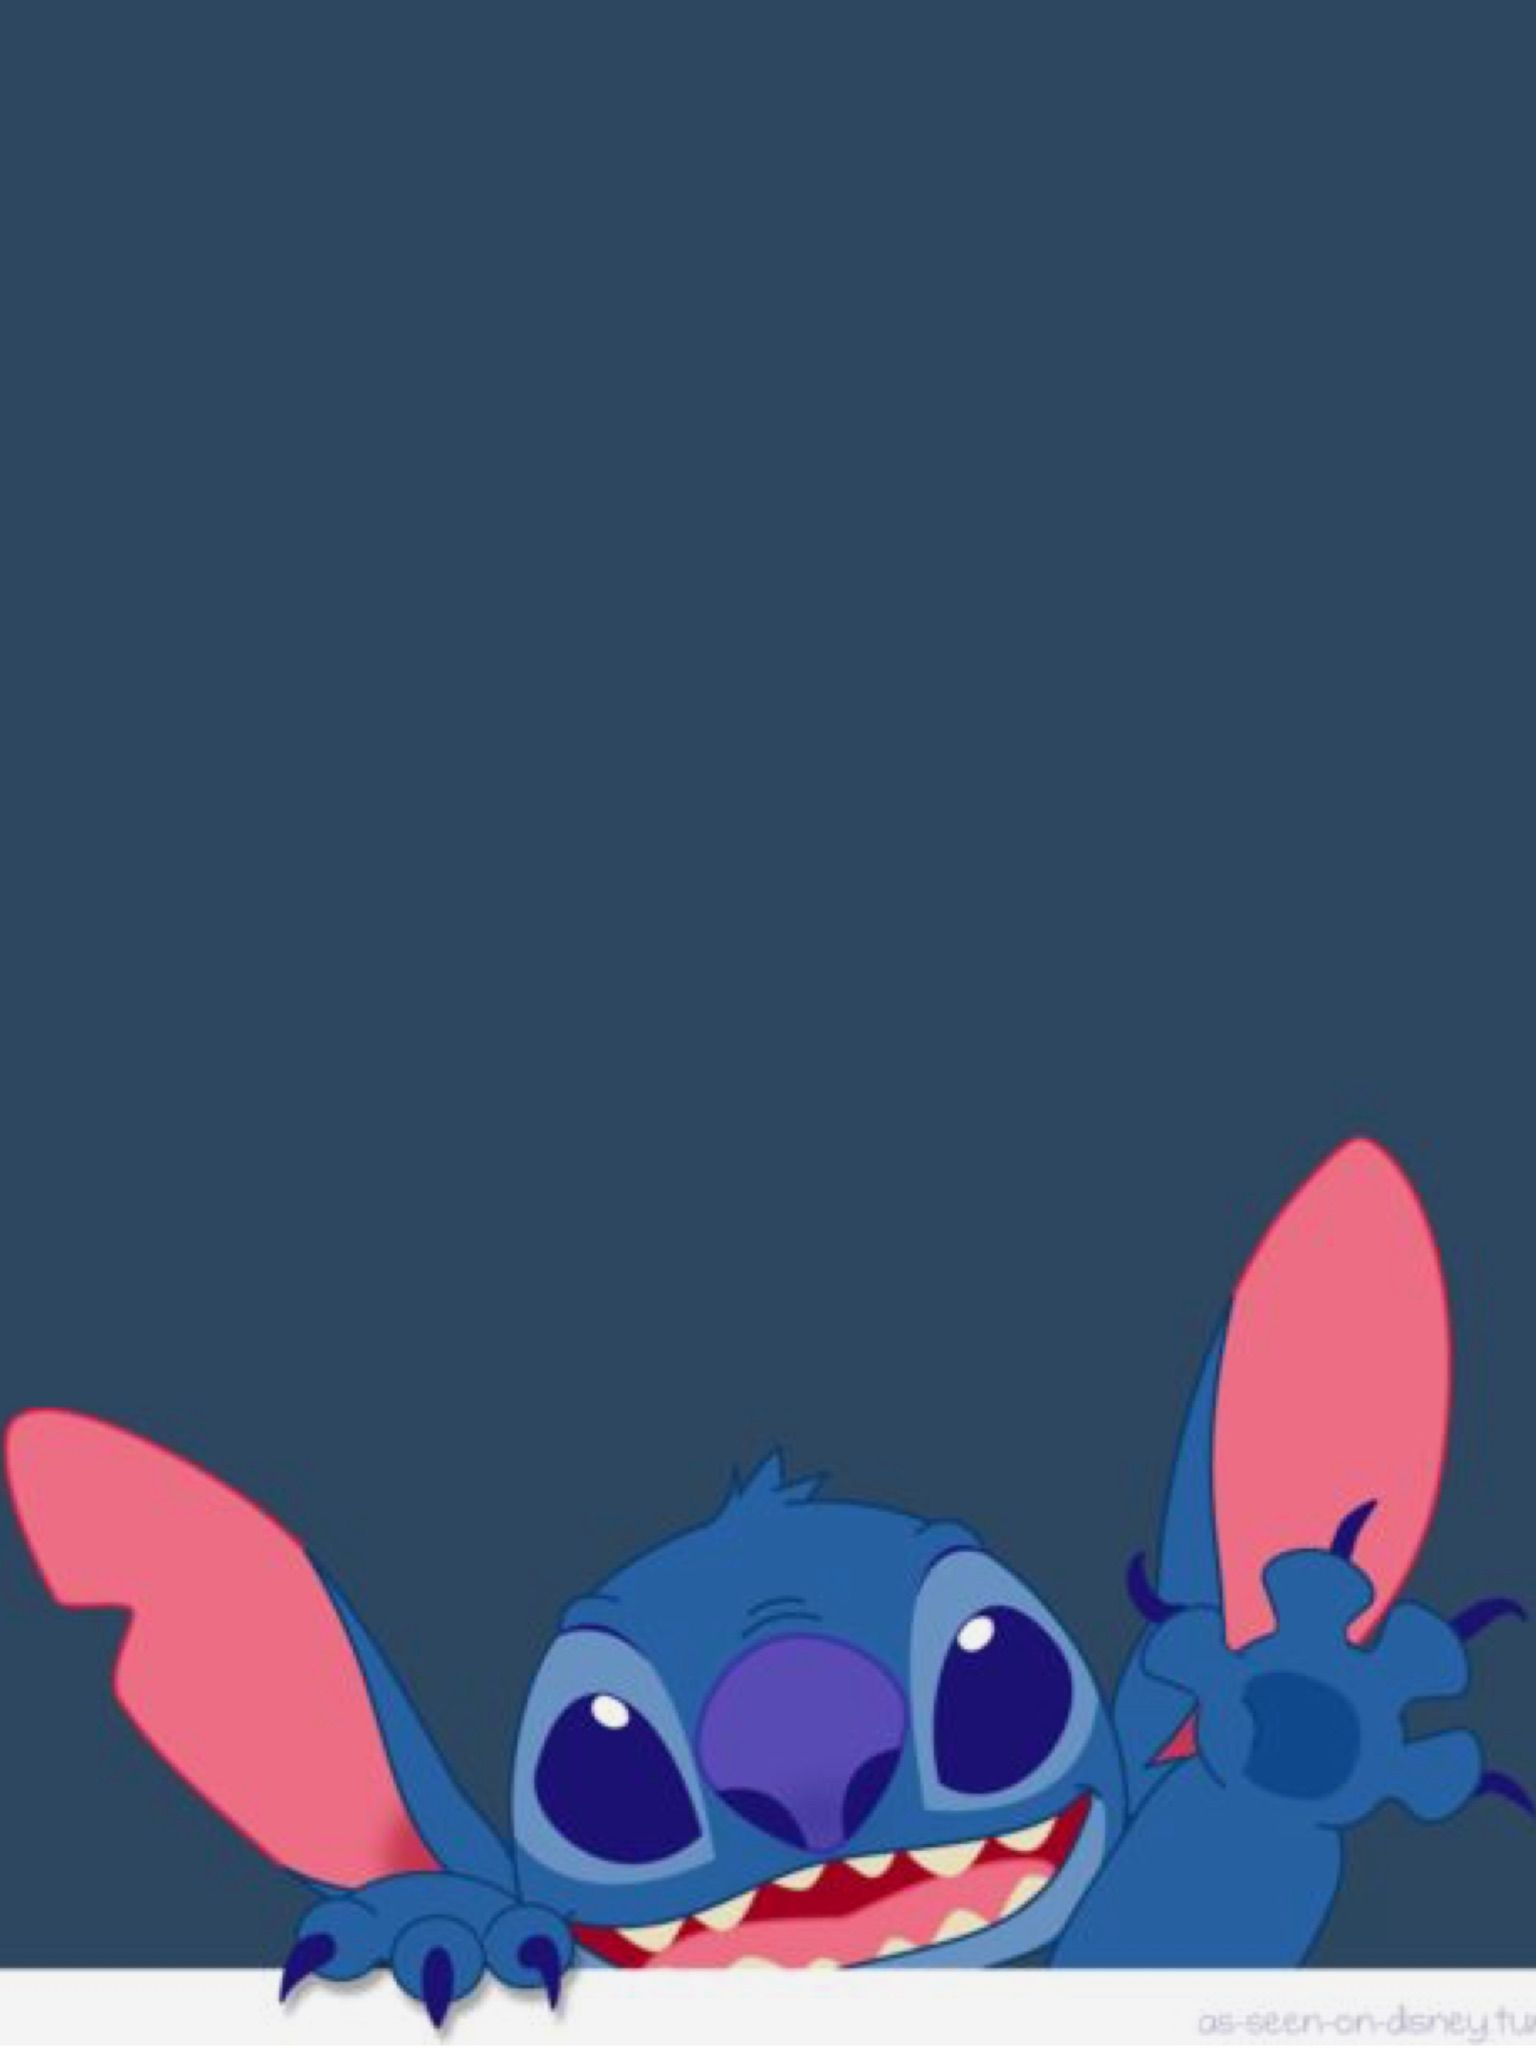 Tumblr Iphone Wallpaper Mobile Wallpapers Disney Stitch Cute Stitching Couture Backgrounds For